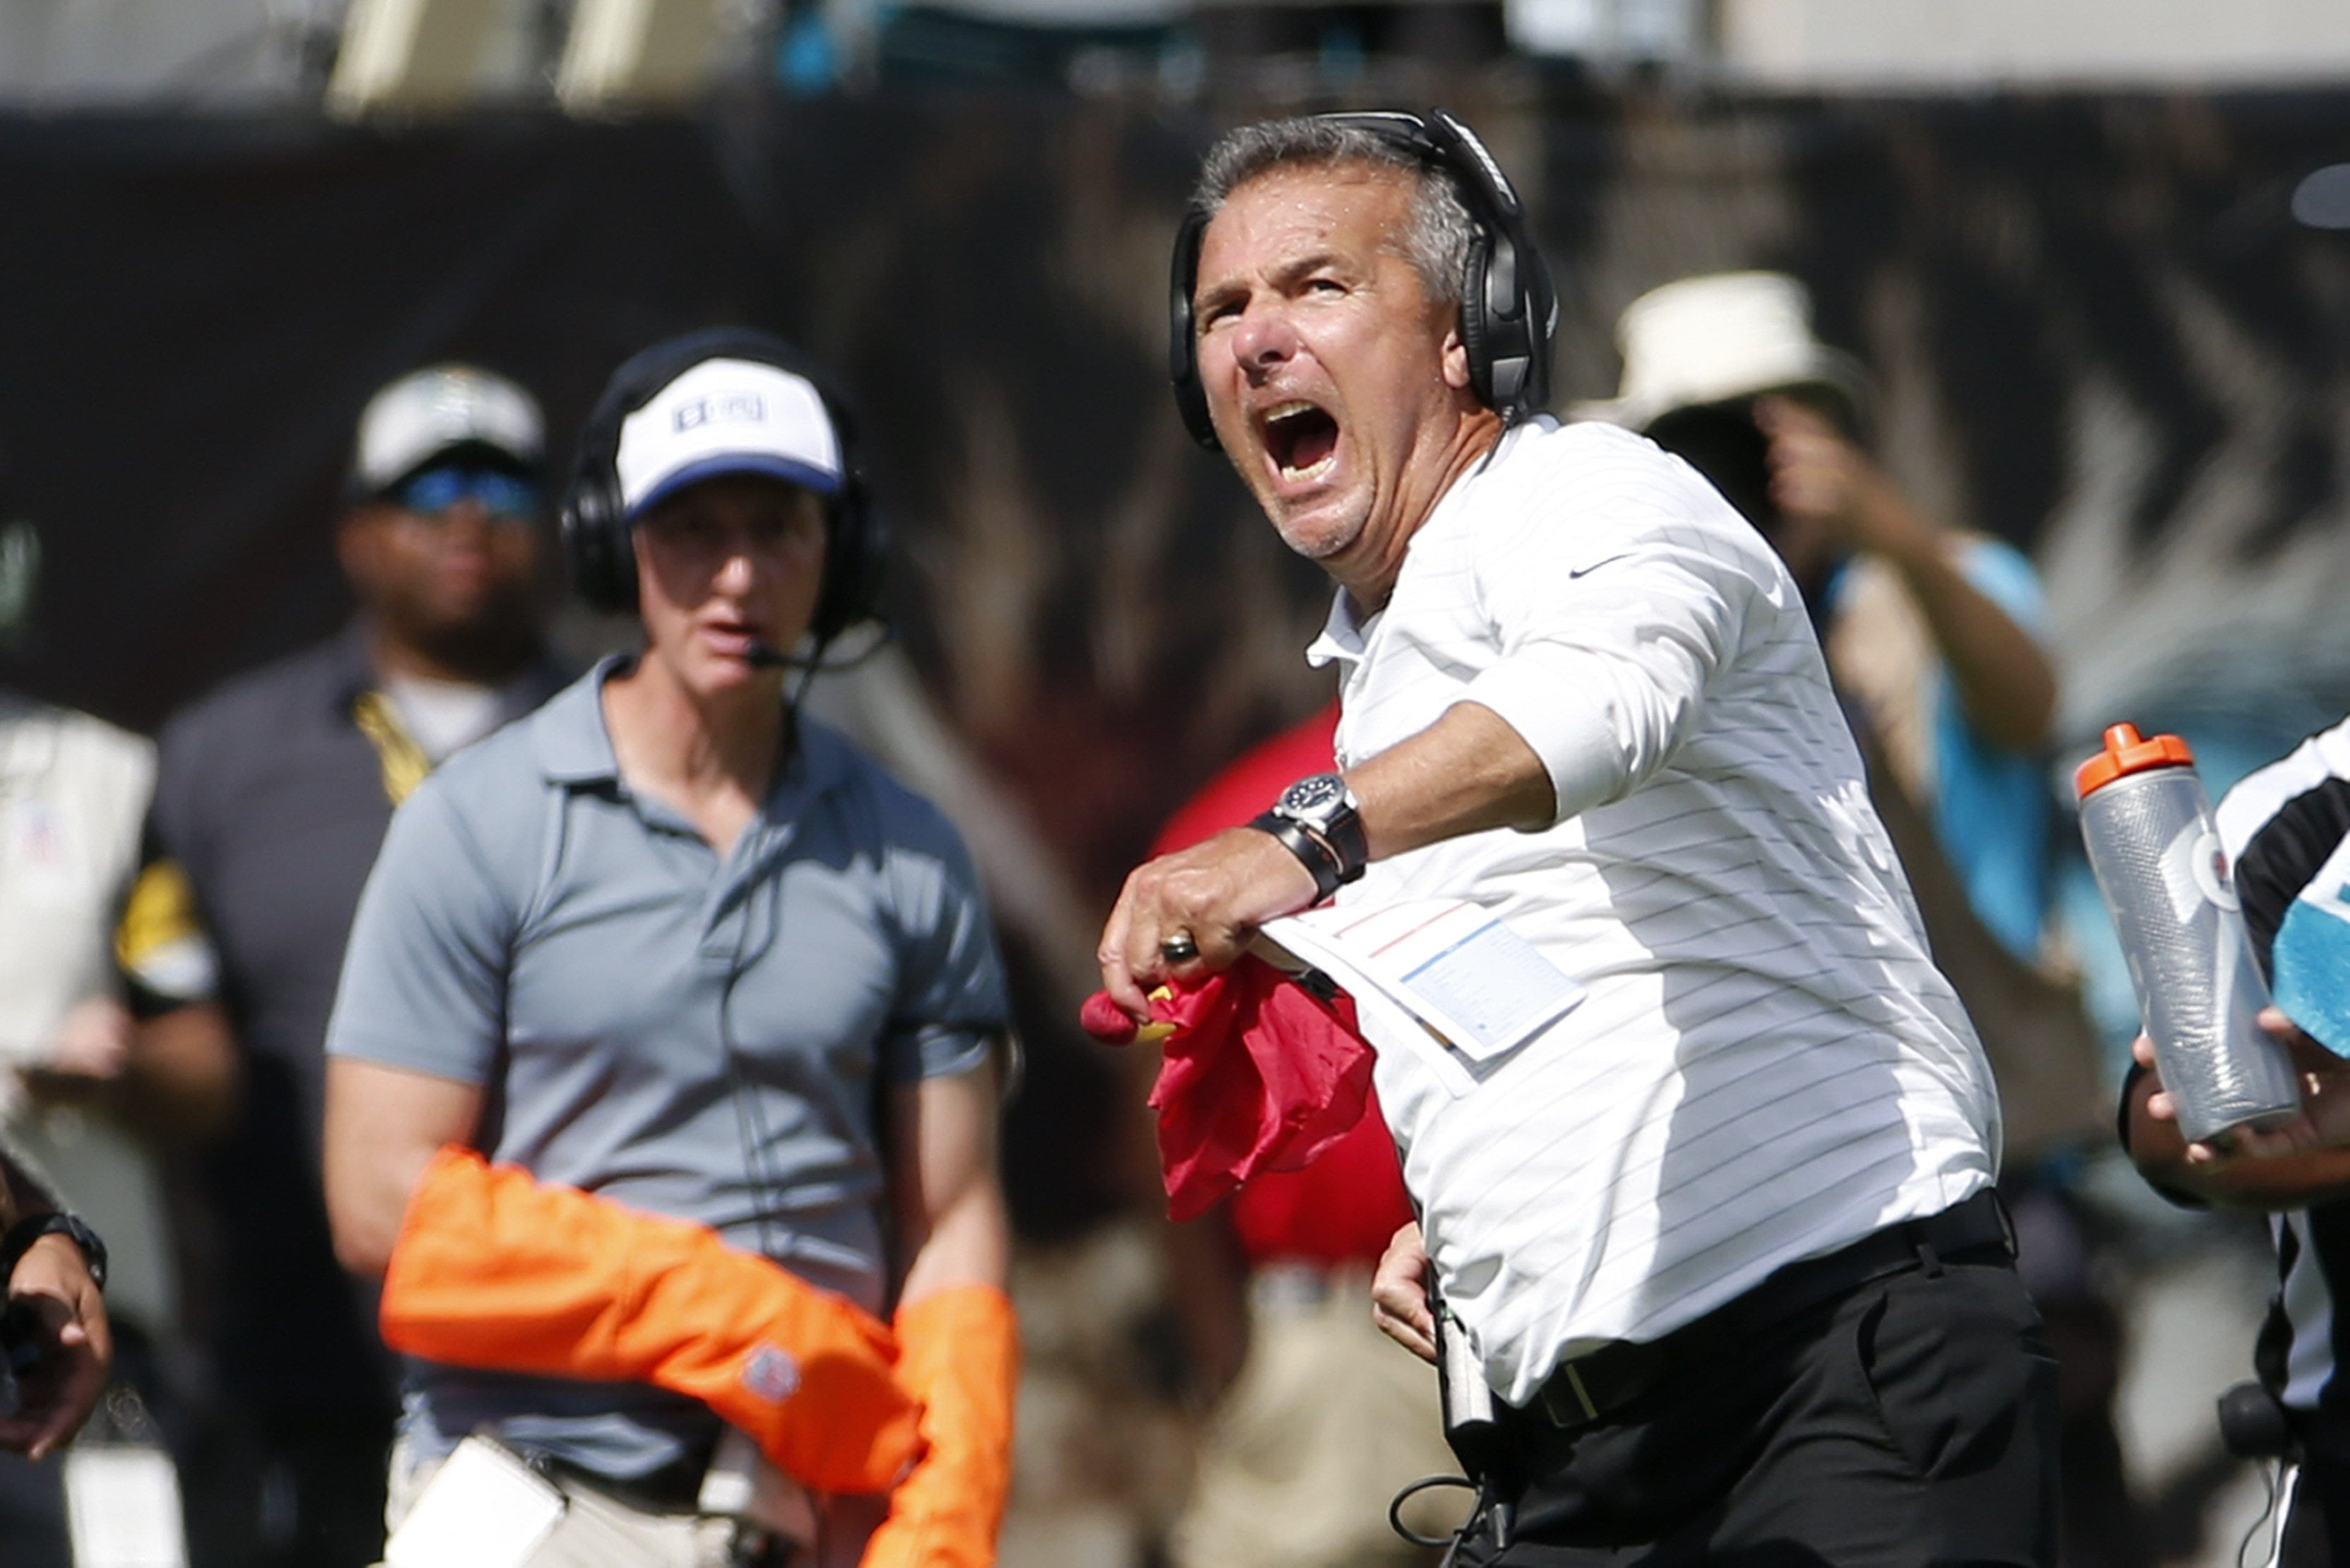 Opinion: As red flags mount, Jaguars  Urban Meyer must show he can handle NFL